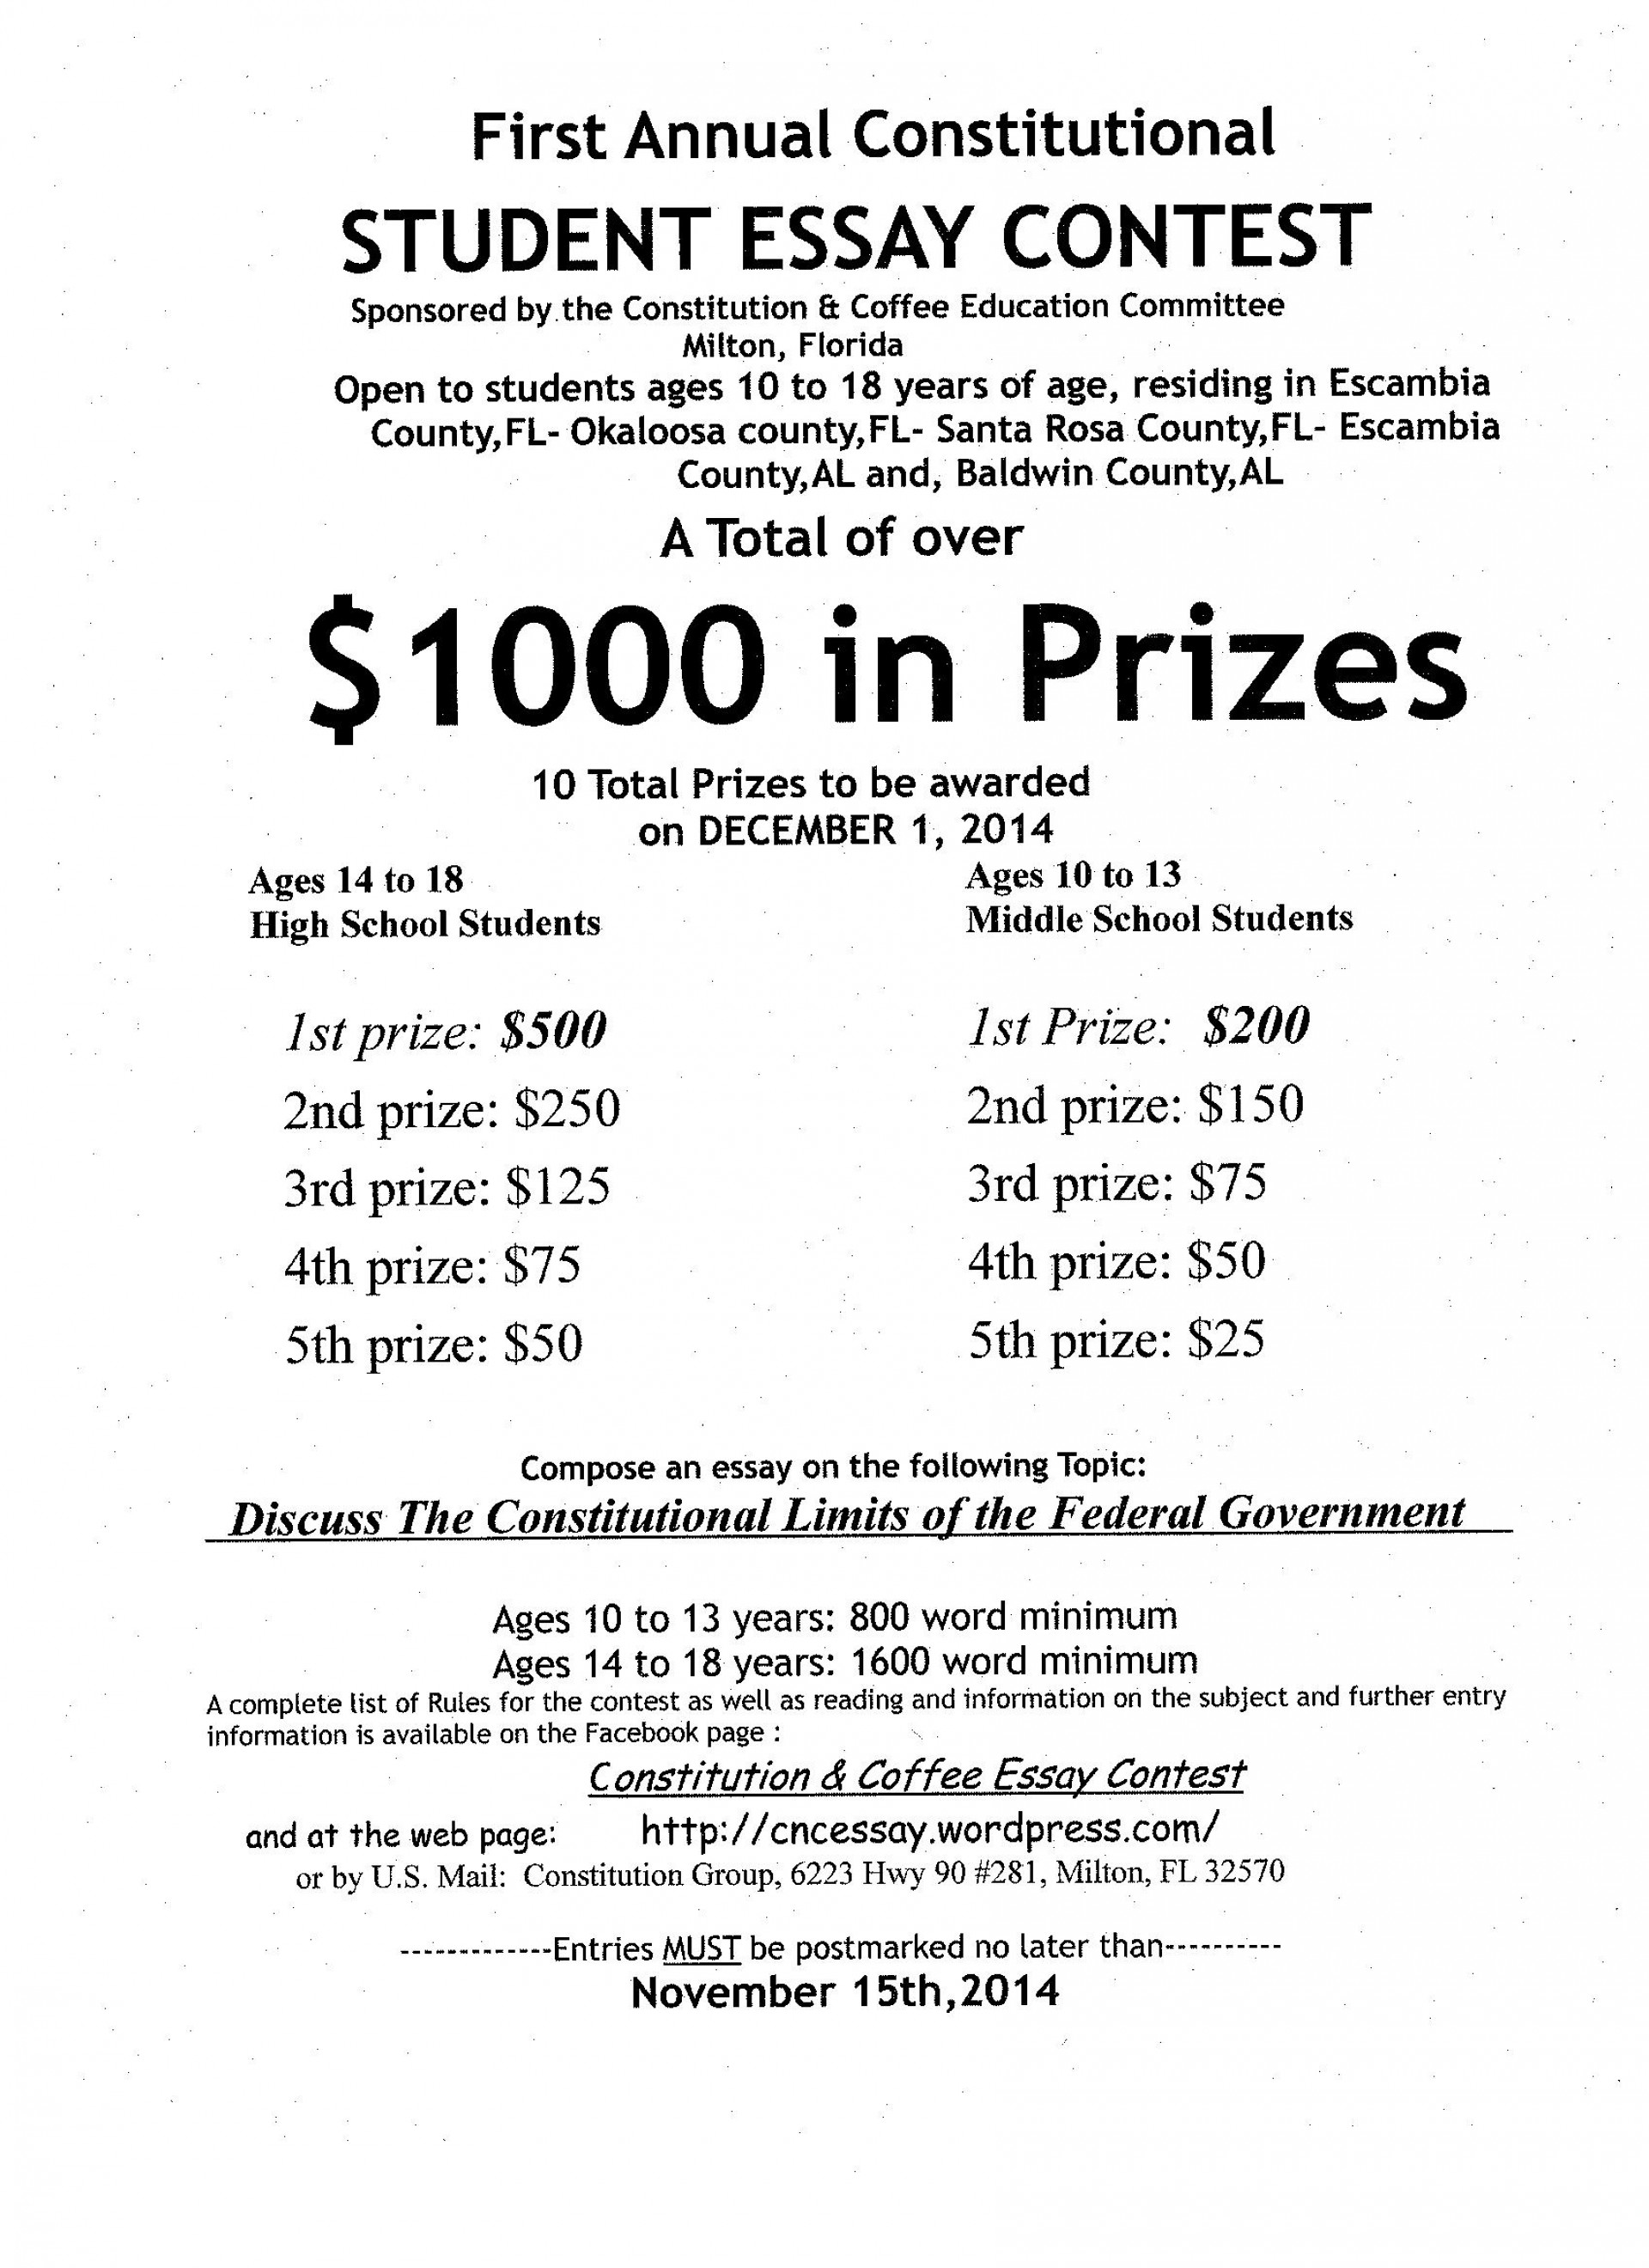 011 Essay Contest Flyer Jpeg Buy College Marvelous Best Site To Essays Place Website Papers 1920